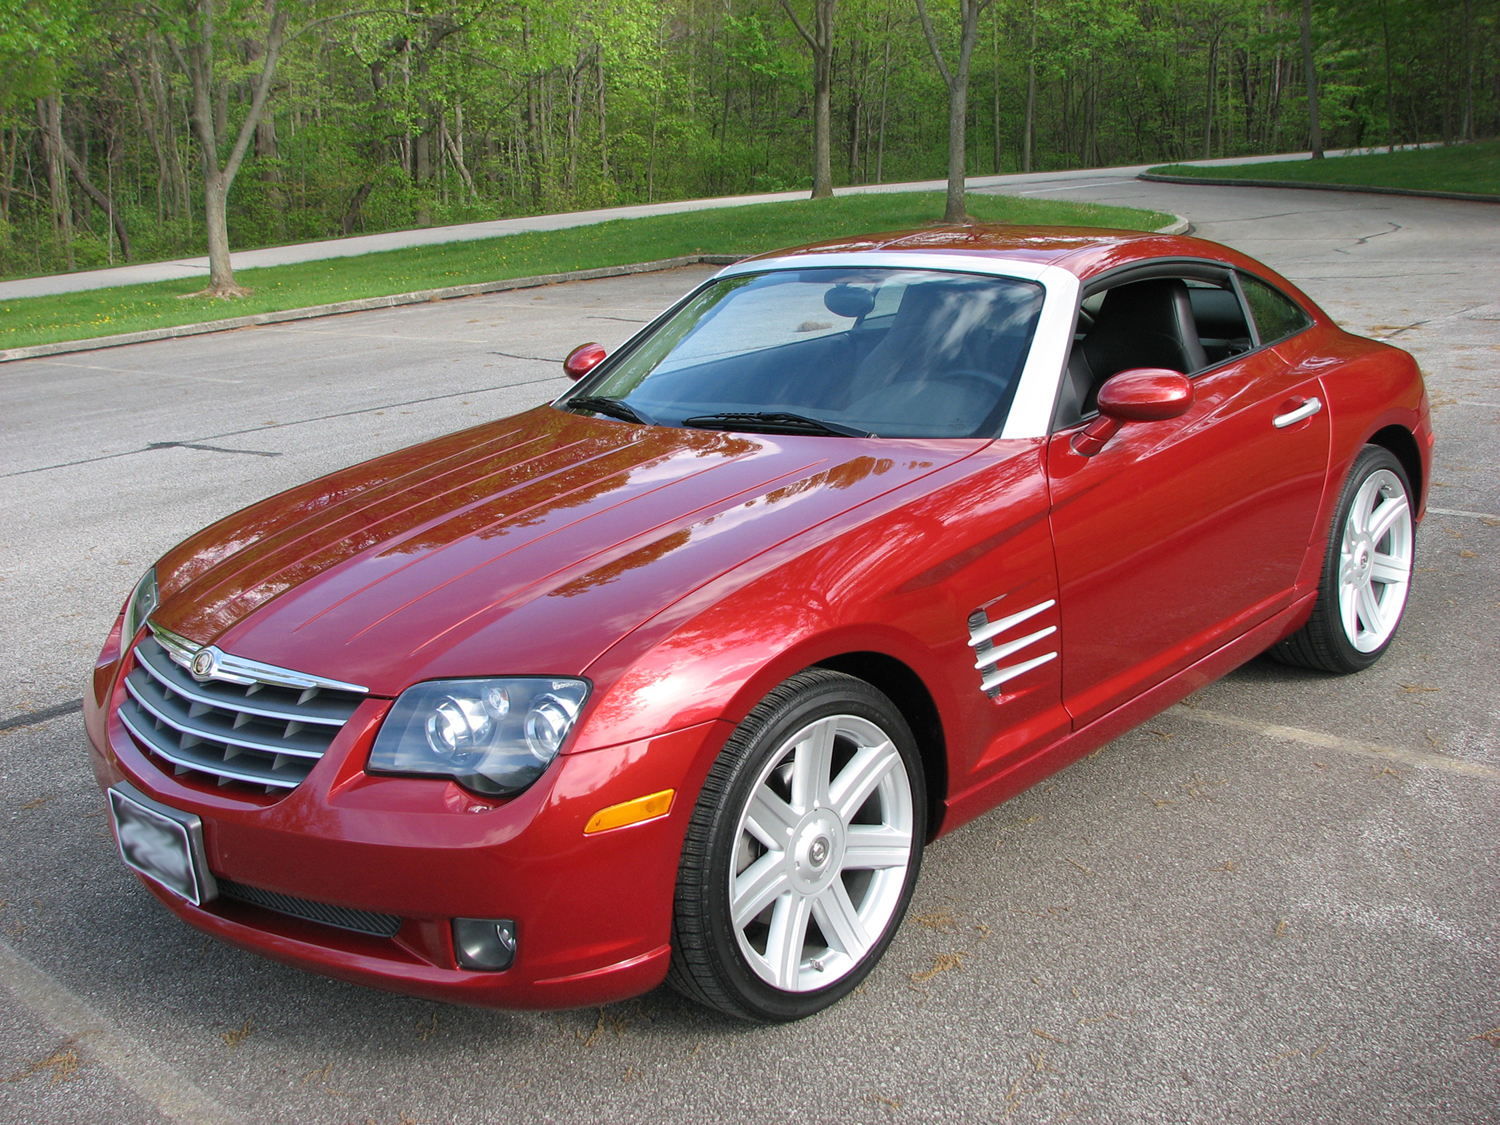 2004 Chrysler Crossfire picture